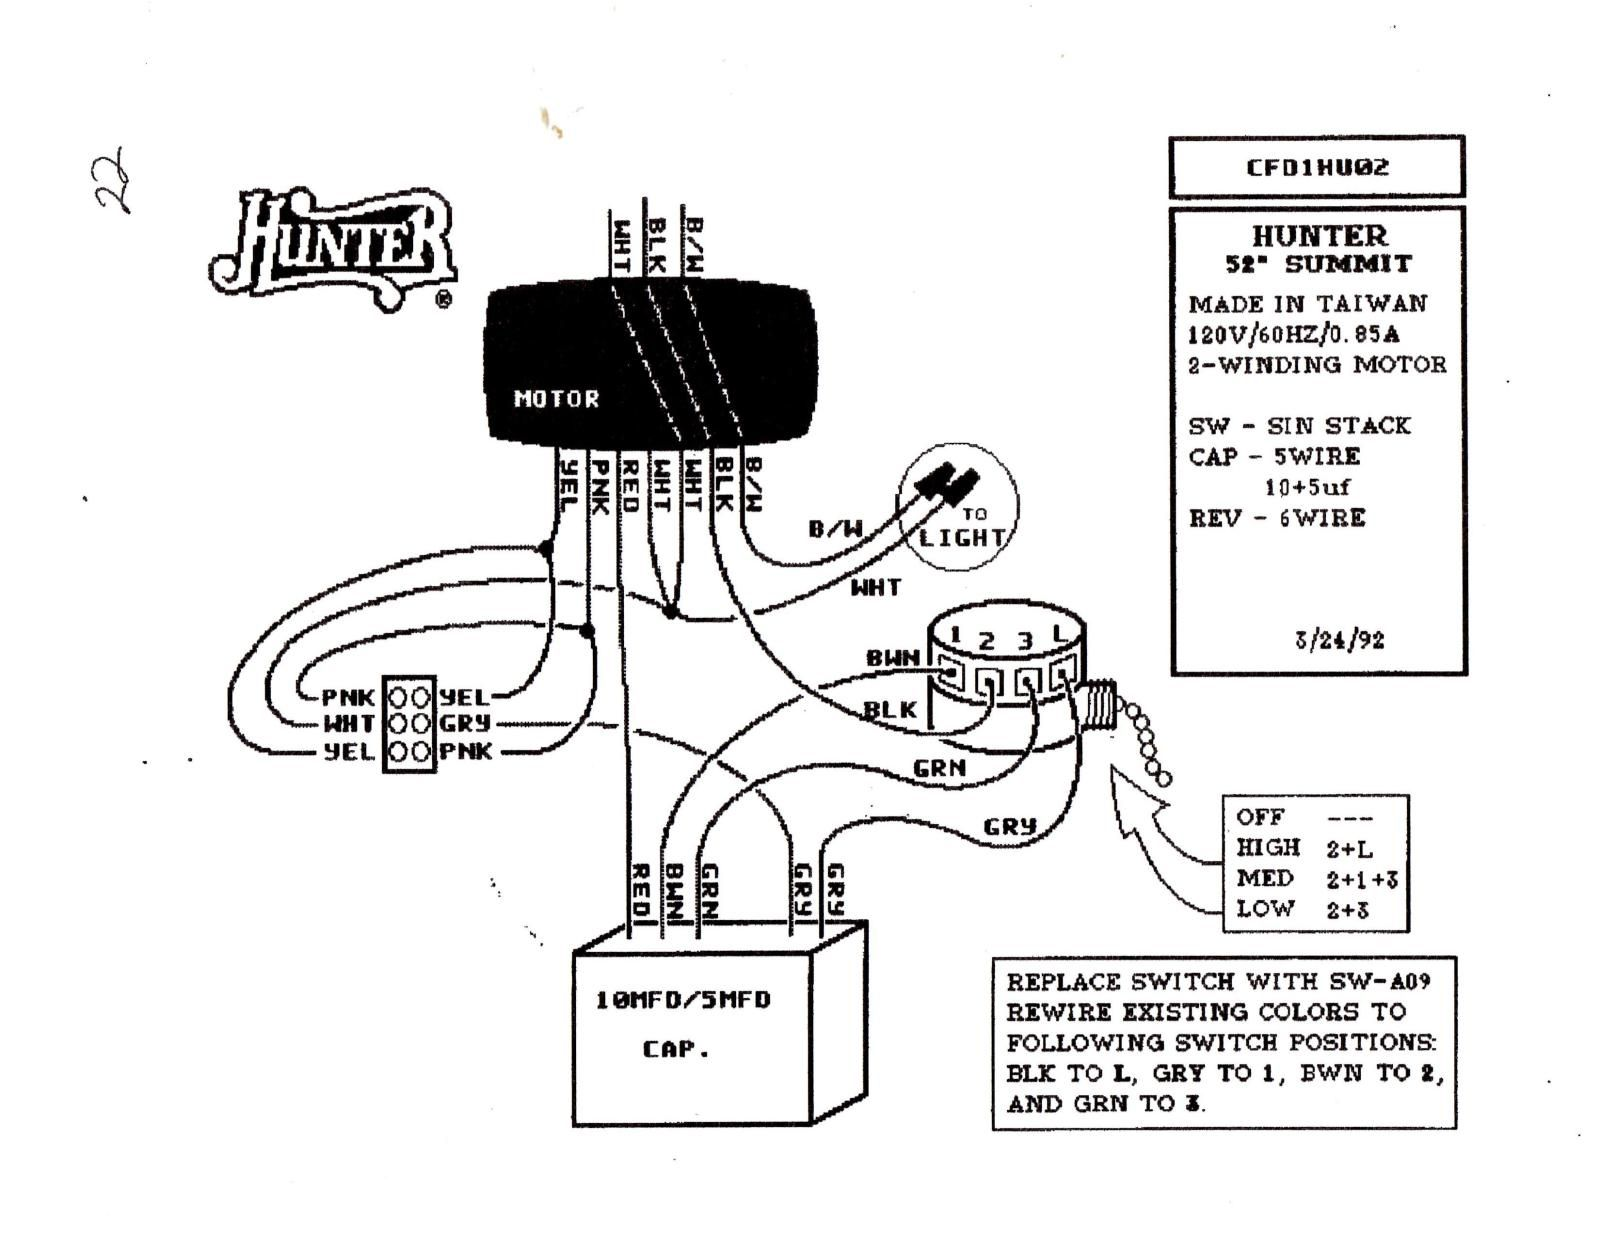 Hunter Ceiling Fan Speed Switch Wiring Diagram In 2019 Hunter Ceiling Fans Ceiling Fan Motor